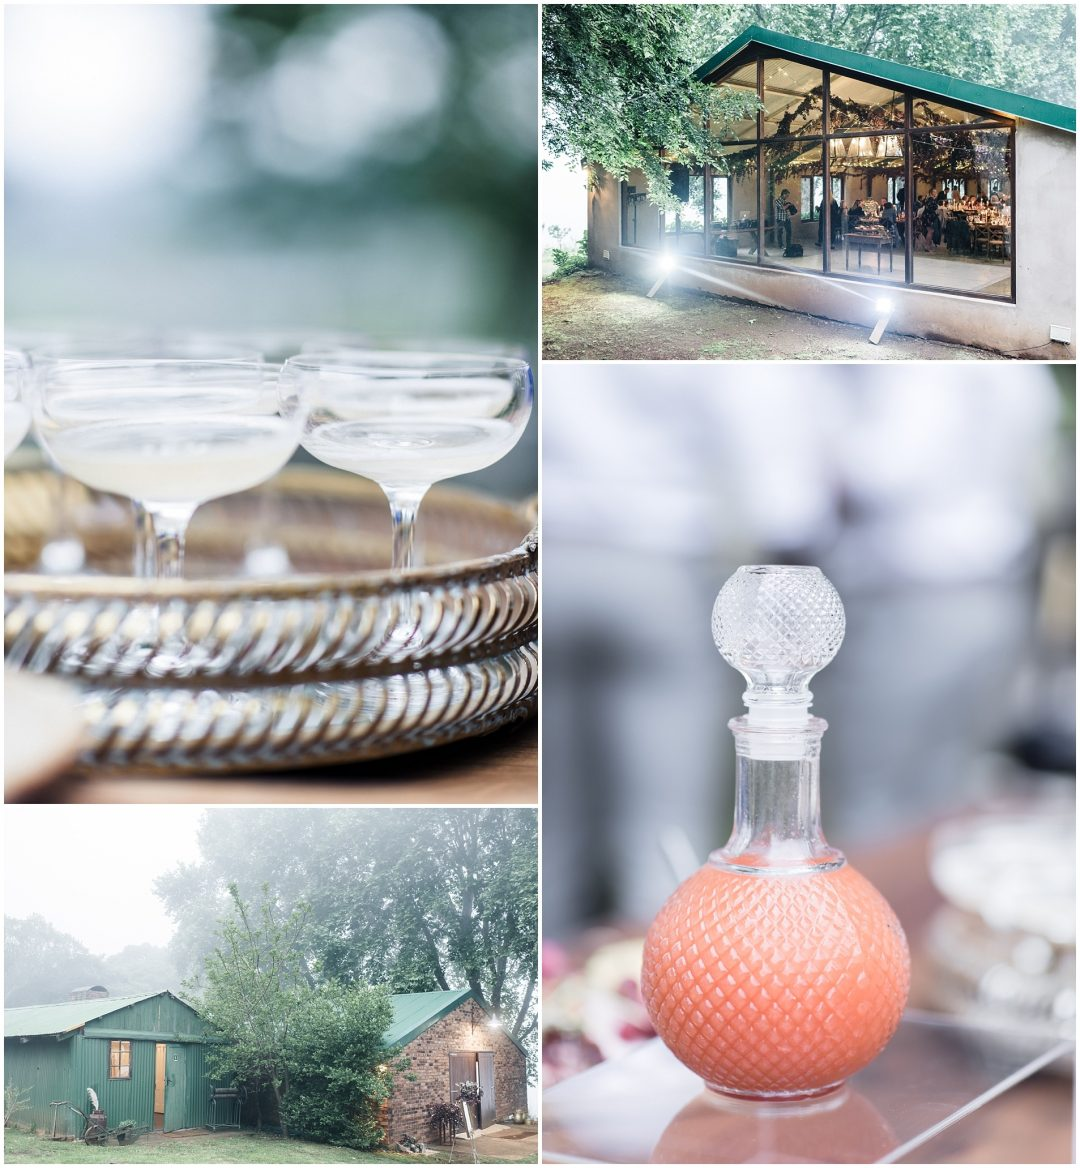 Destination Wedding at Glades Farm, South-Africa - weddings-blog-portfolio, weddings - 27.Destination Bohemian Wedding South Africa 0136